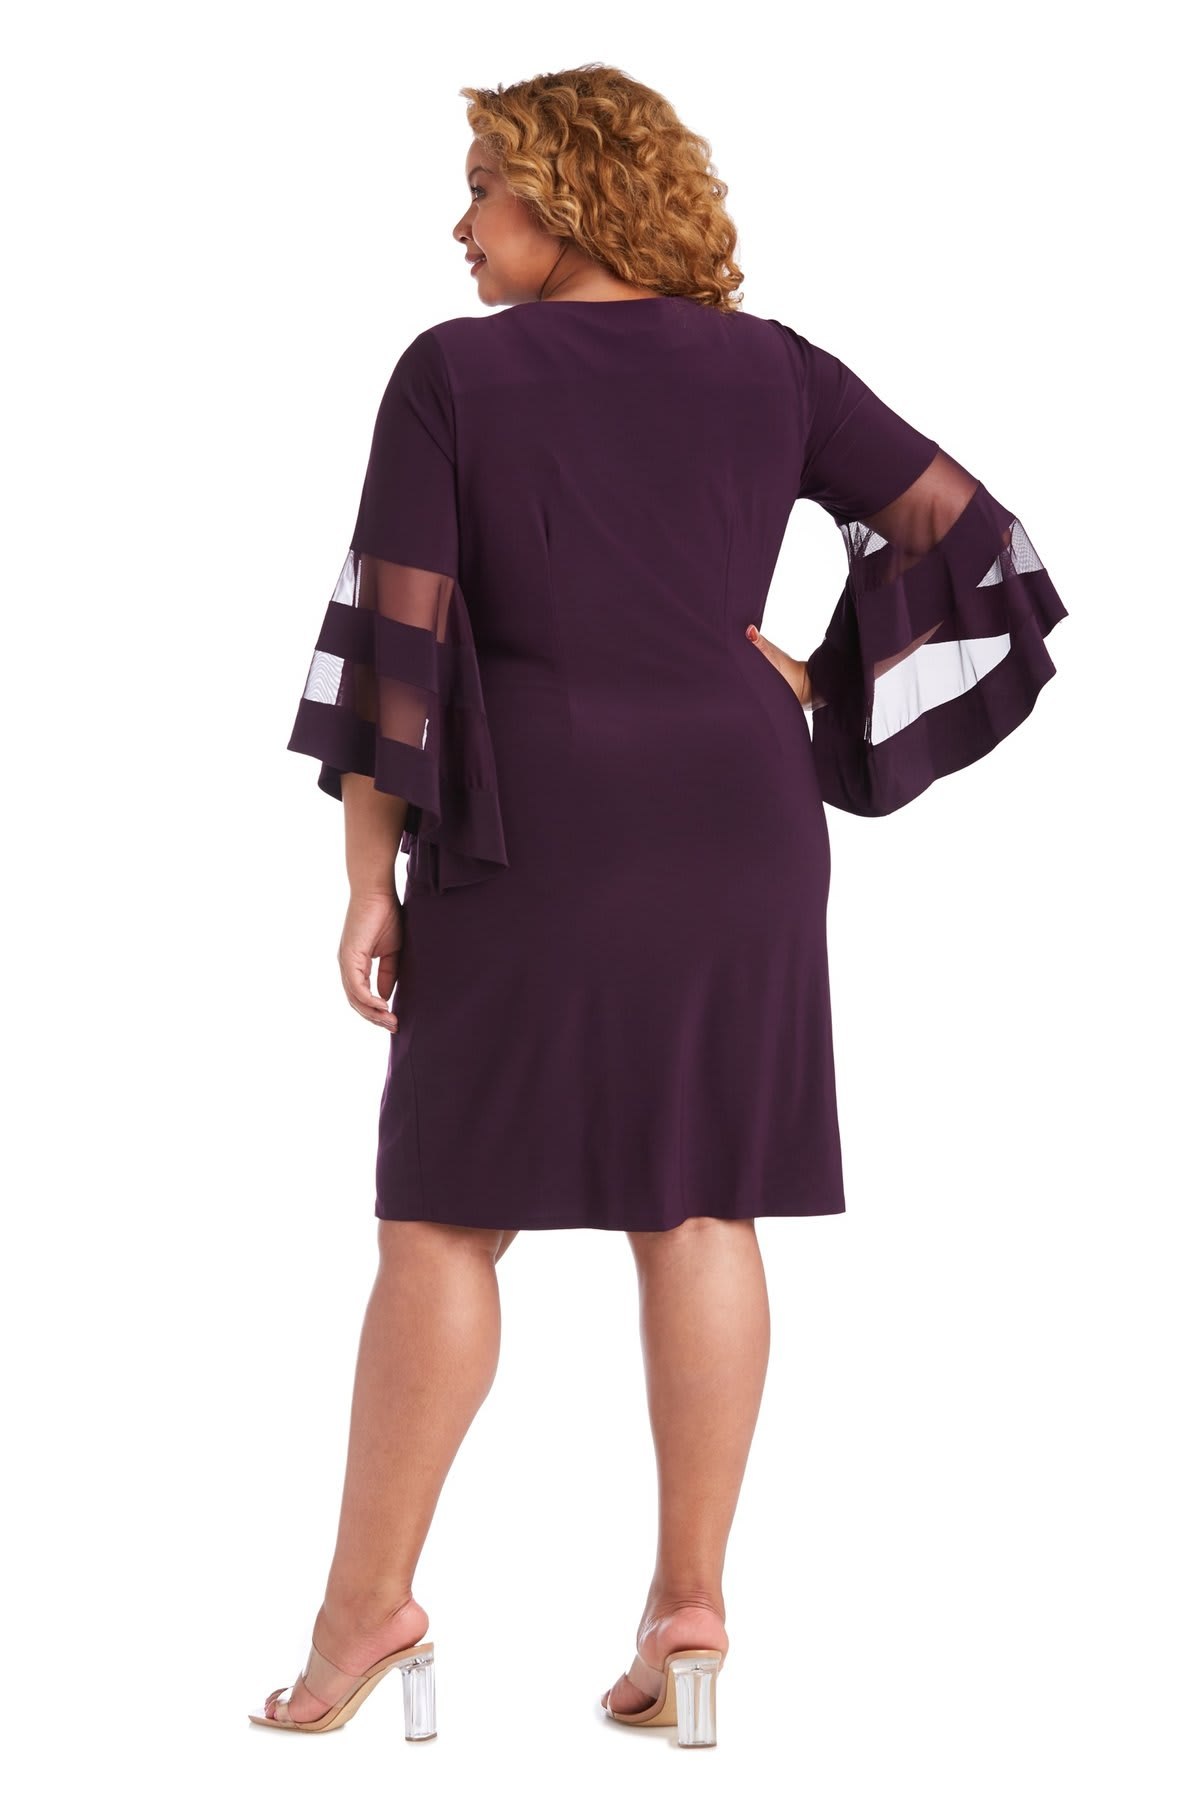 Illusion Bell Sleeve Dress with Rush Detail at Waist - Plus - Plum - Back